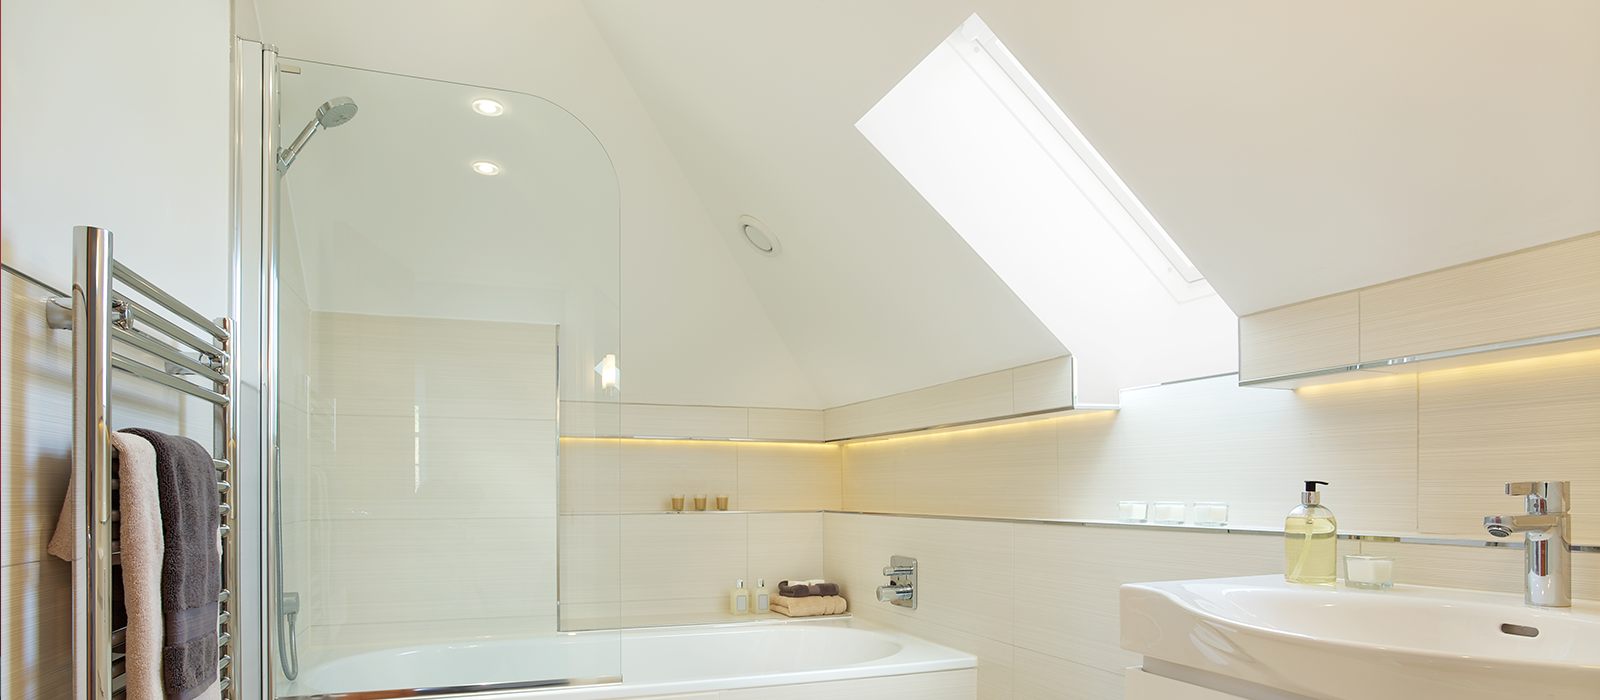 a bathroom that has been converted in a loft